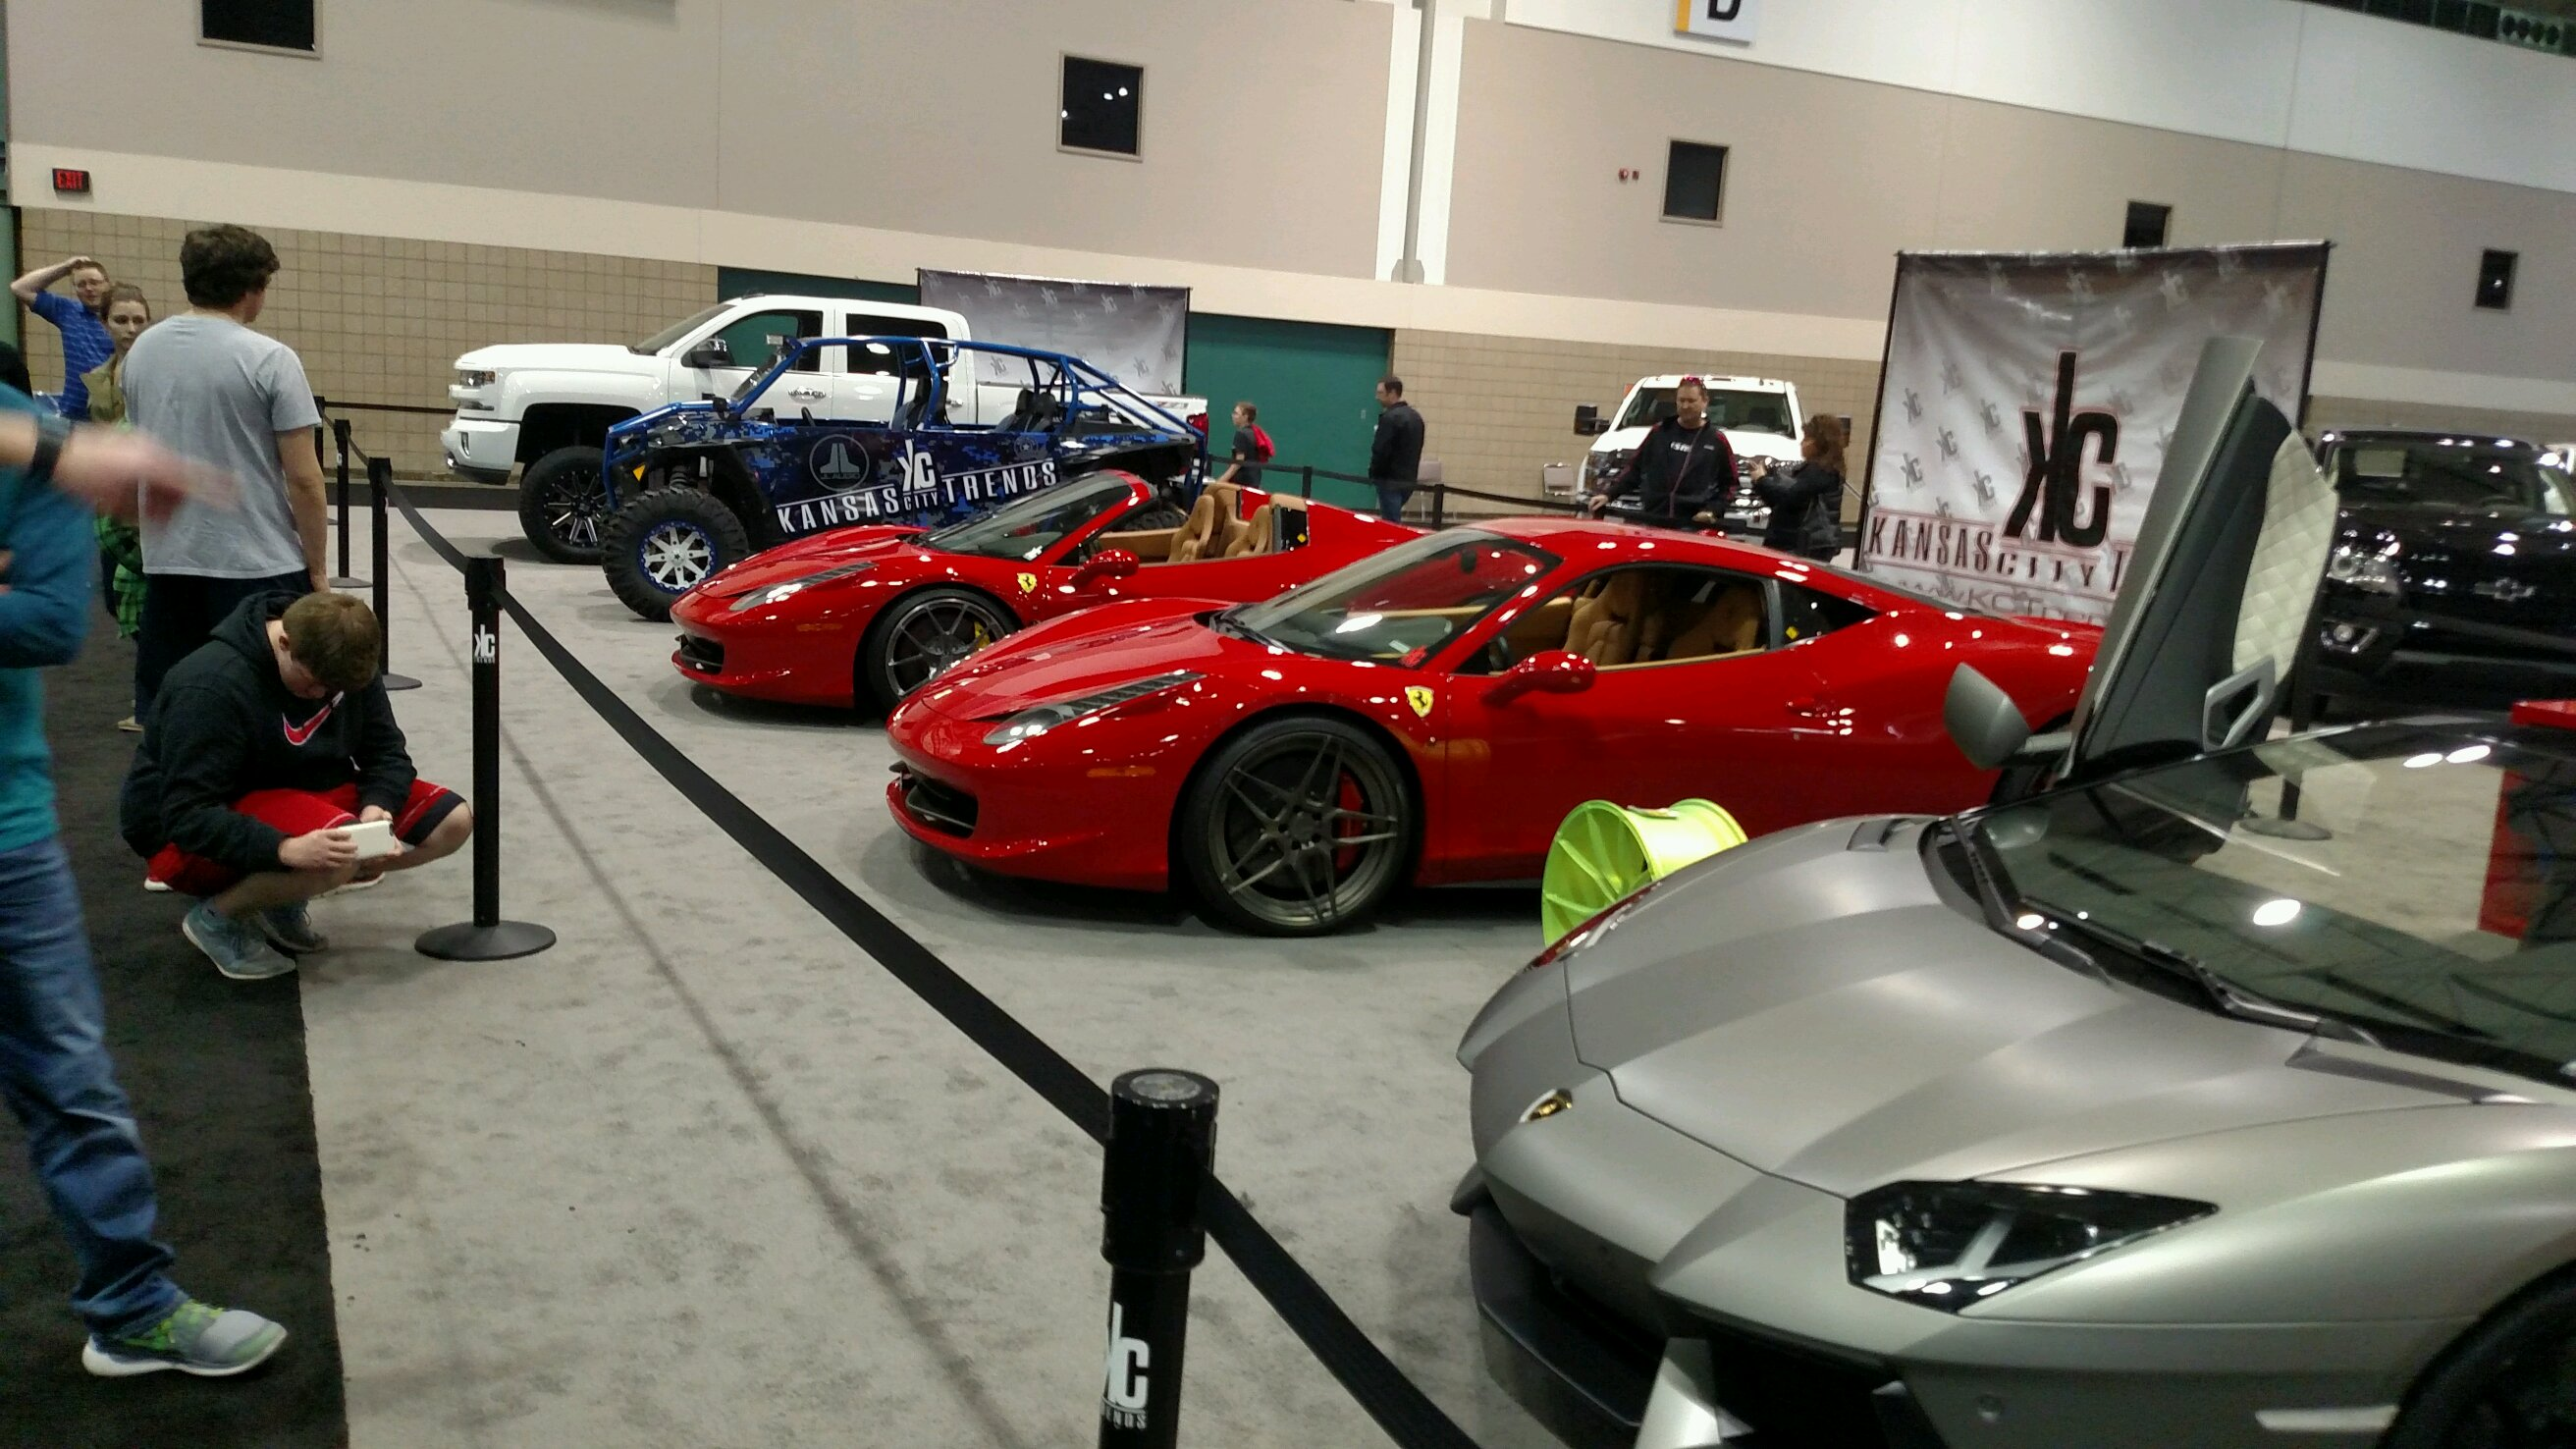 Some Cars I Saw At The KC Auto Show - Kc car show